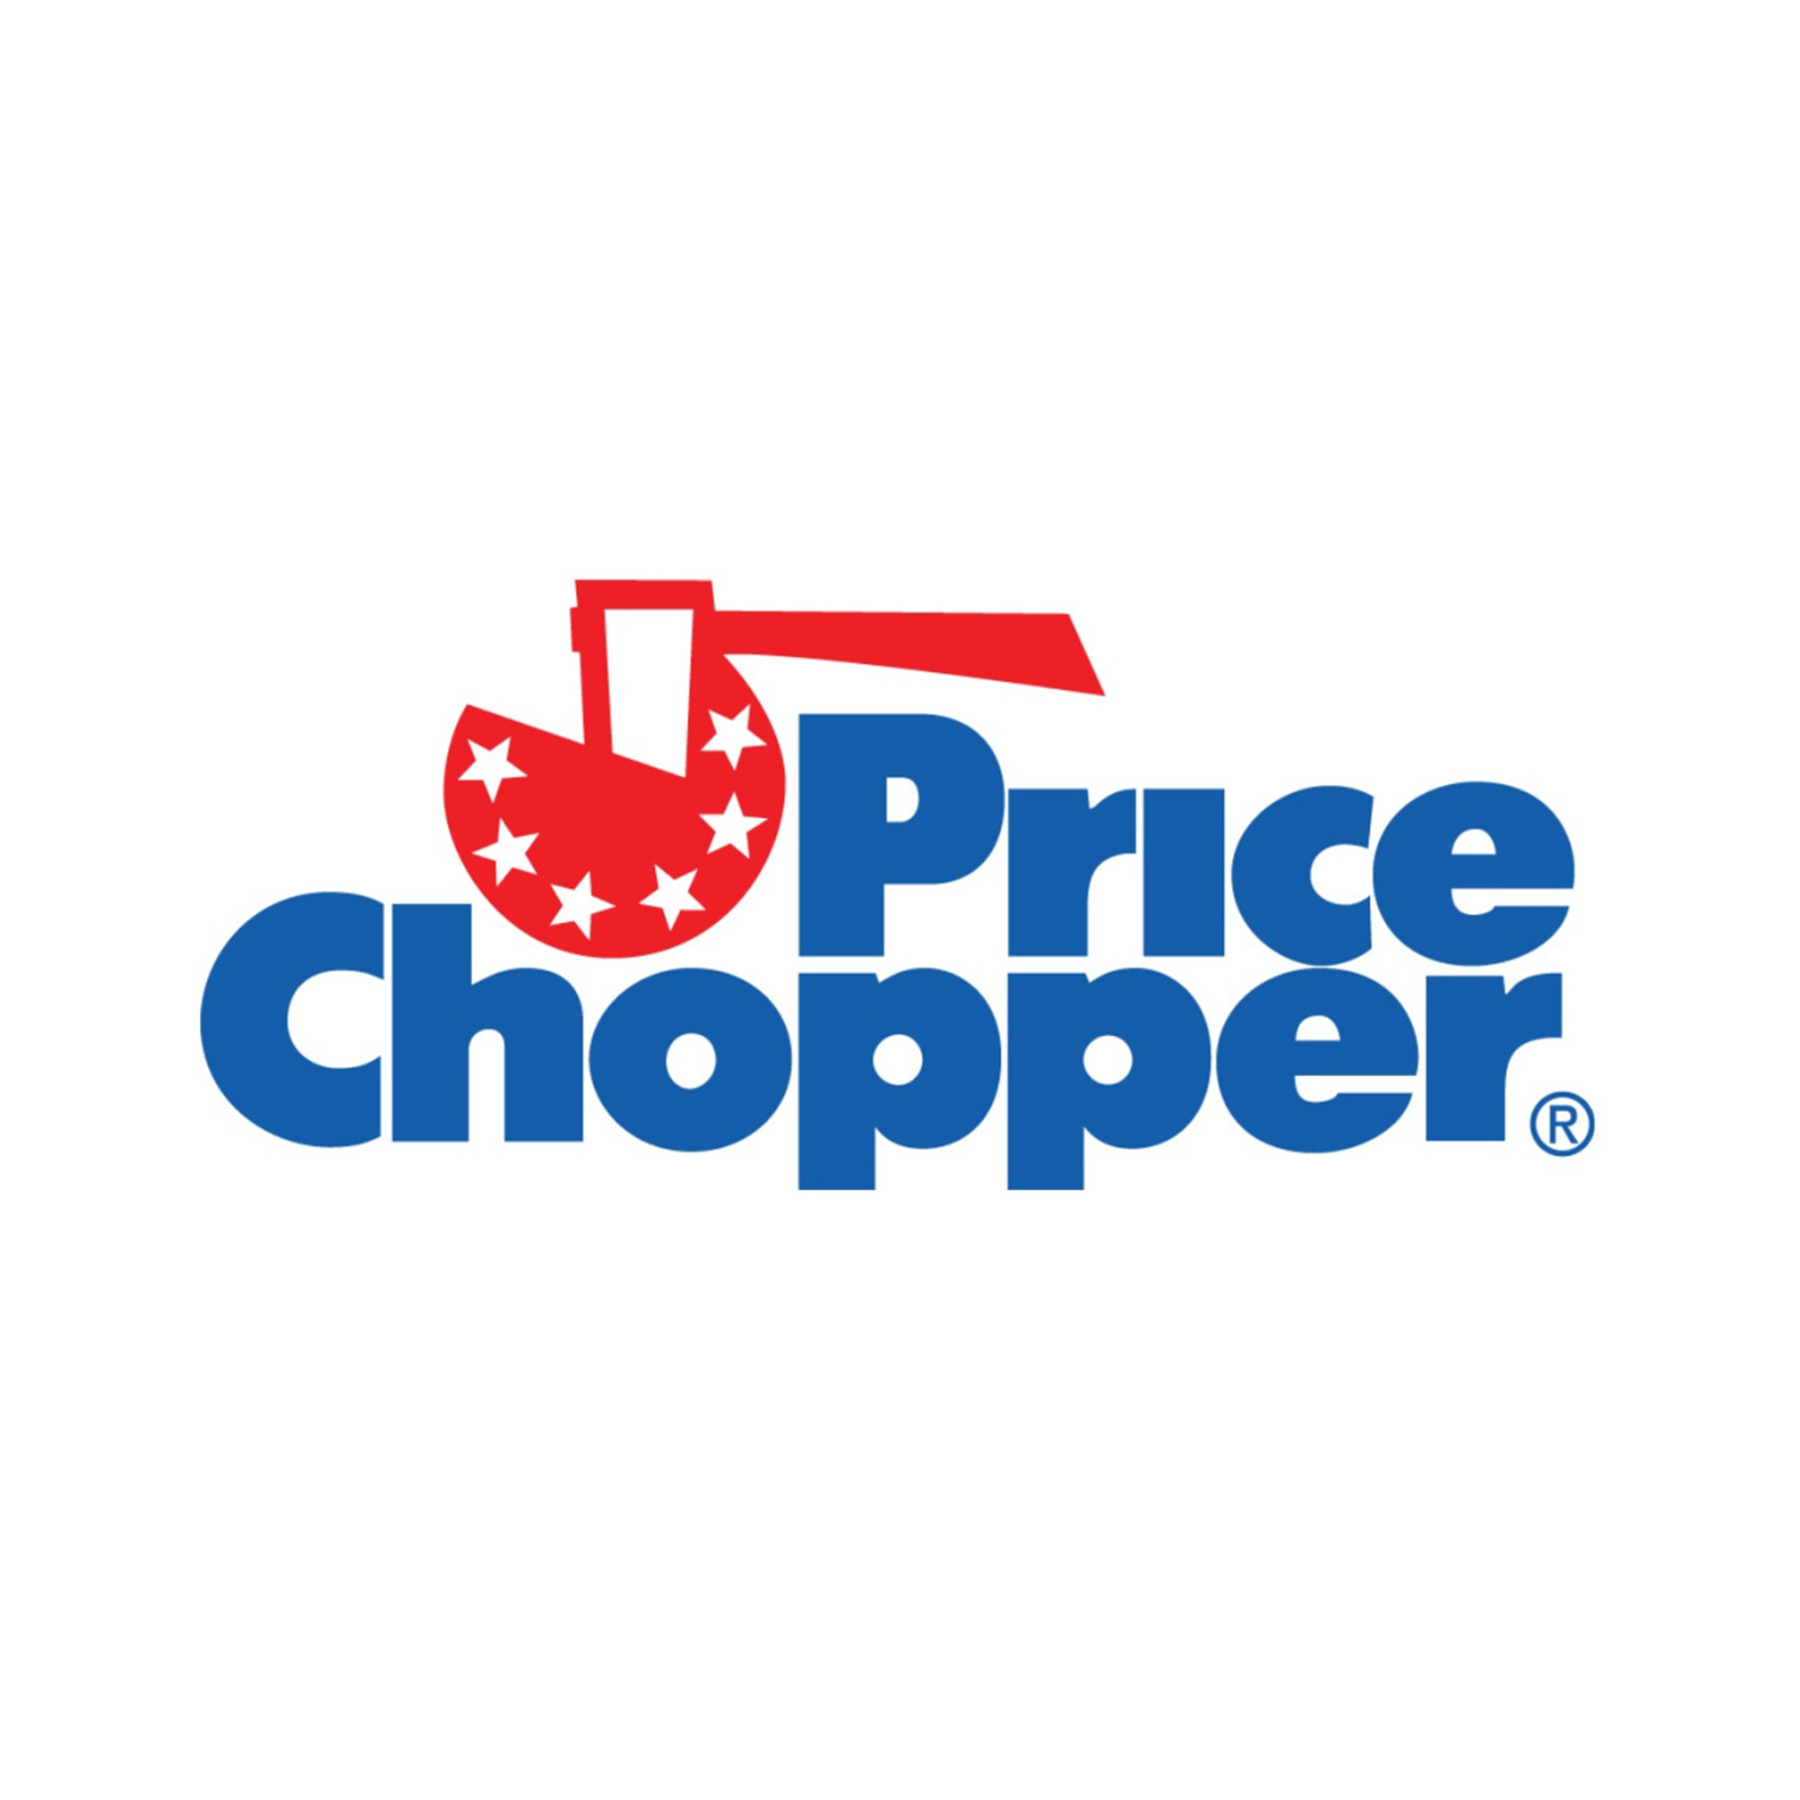 pricechopper.jpg